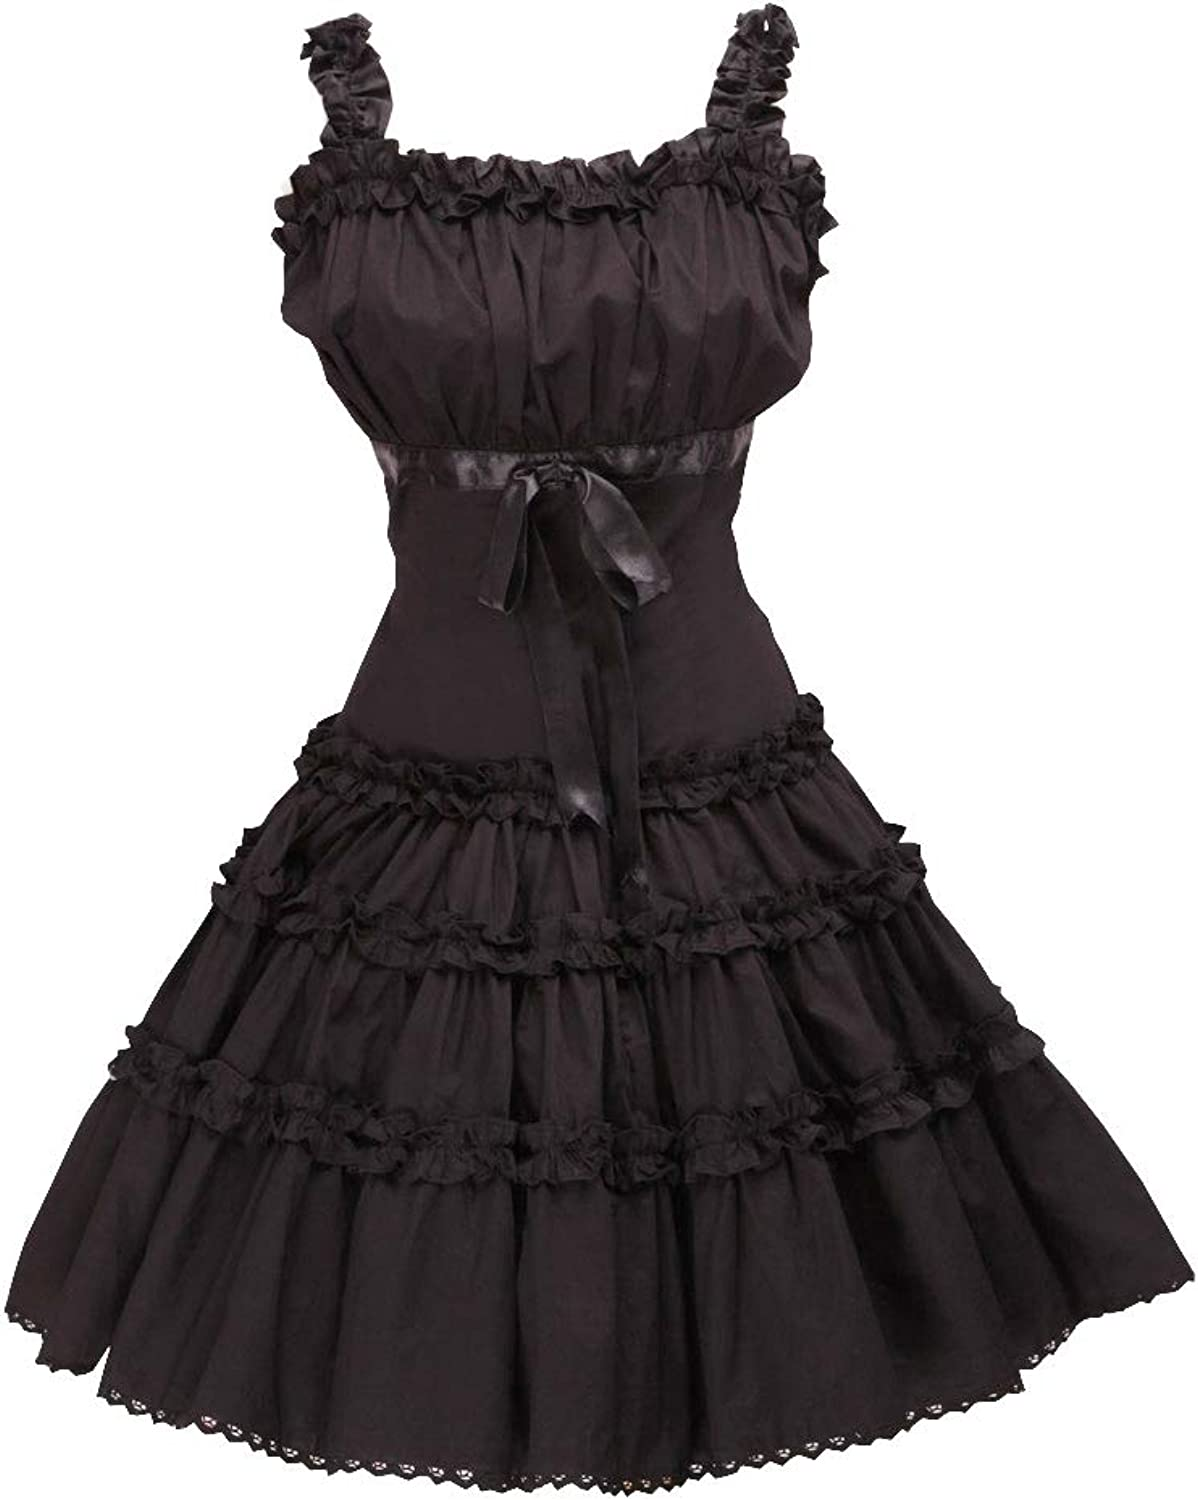 Antaina Black Cotton Ruffle Lace Halter Sweet Sexy Gothic Lolita Cosplay Dress